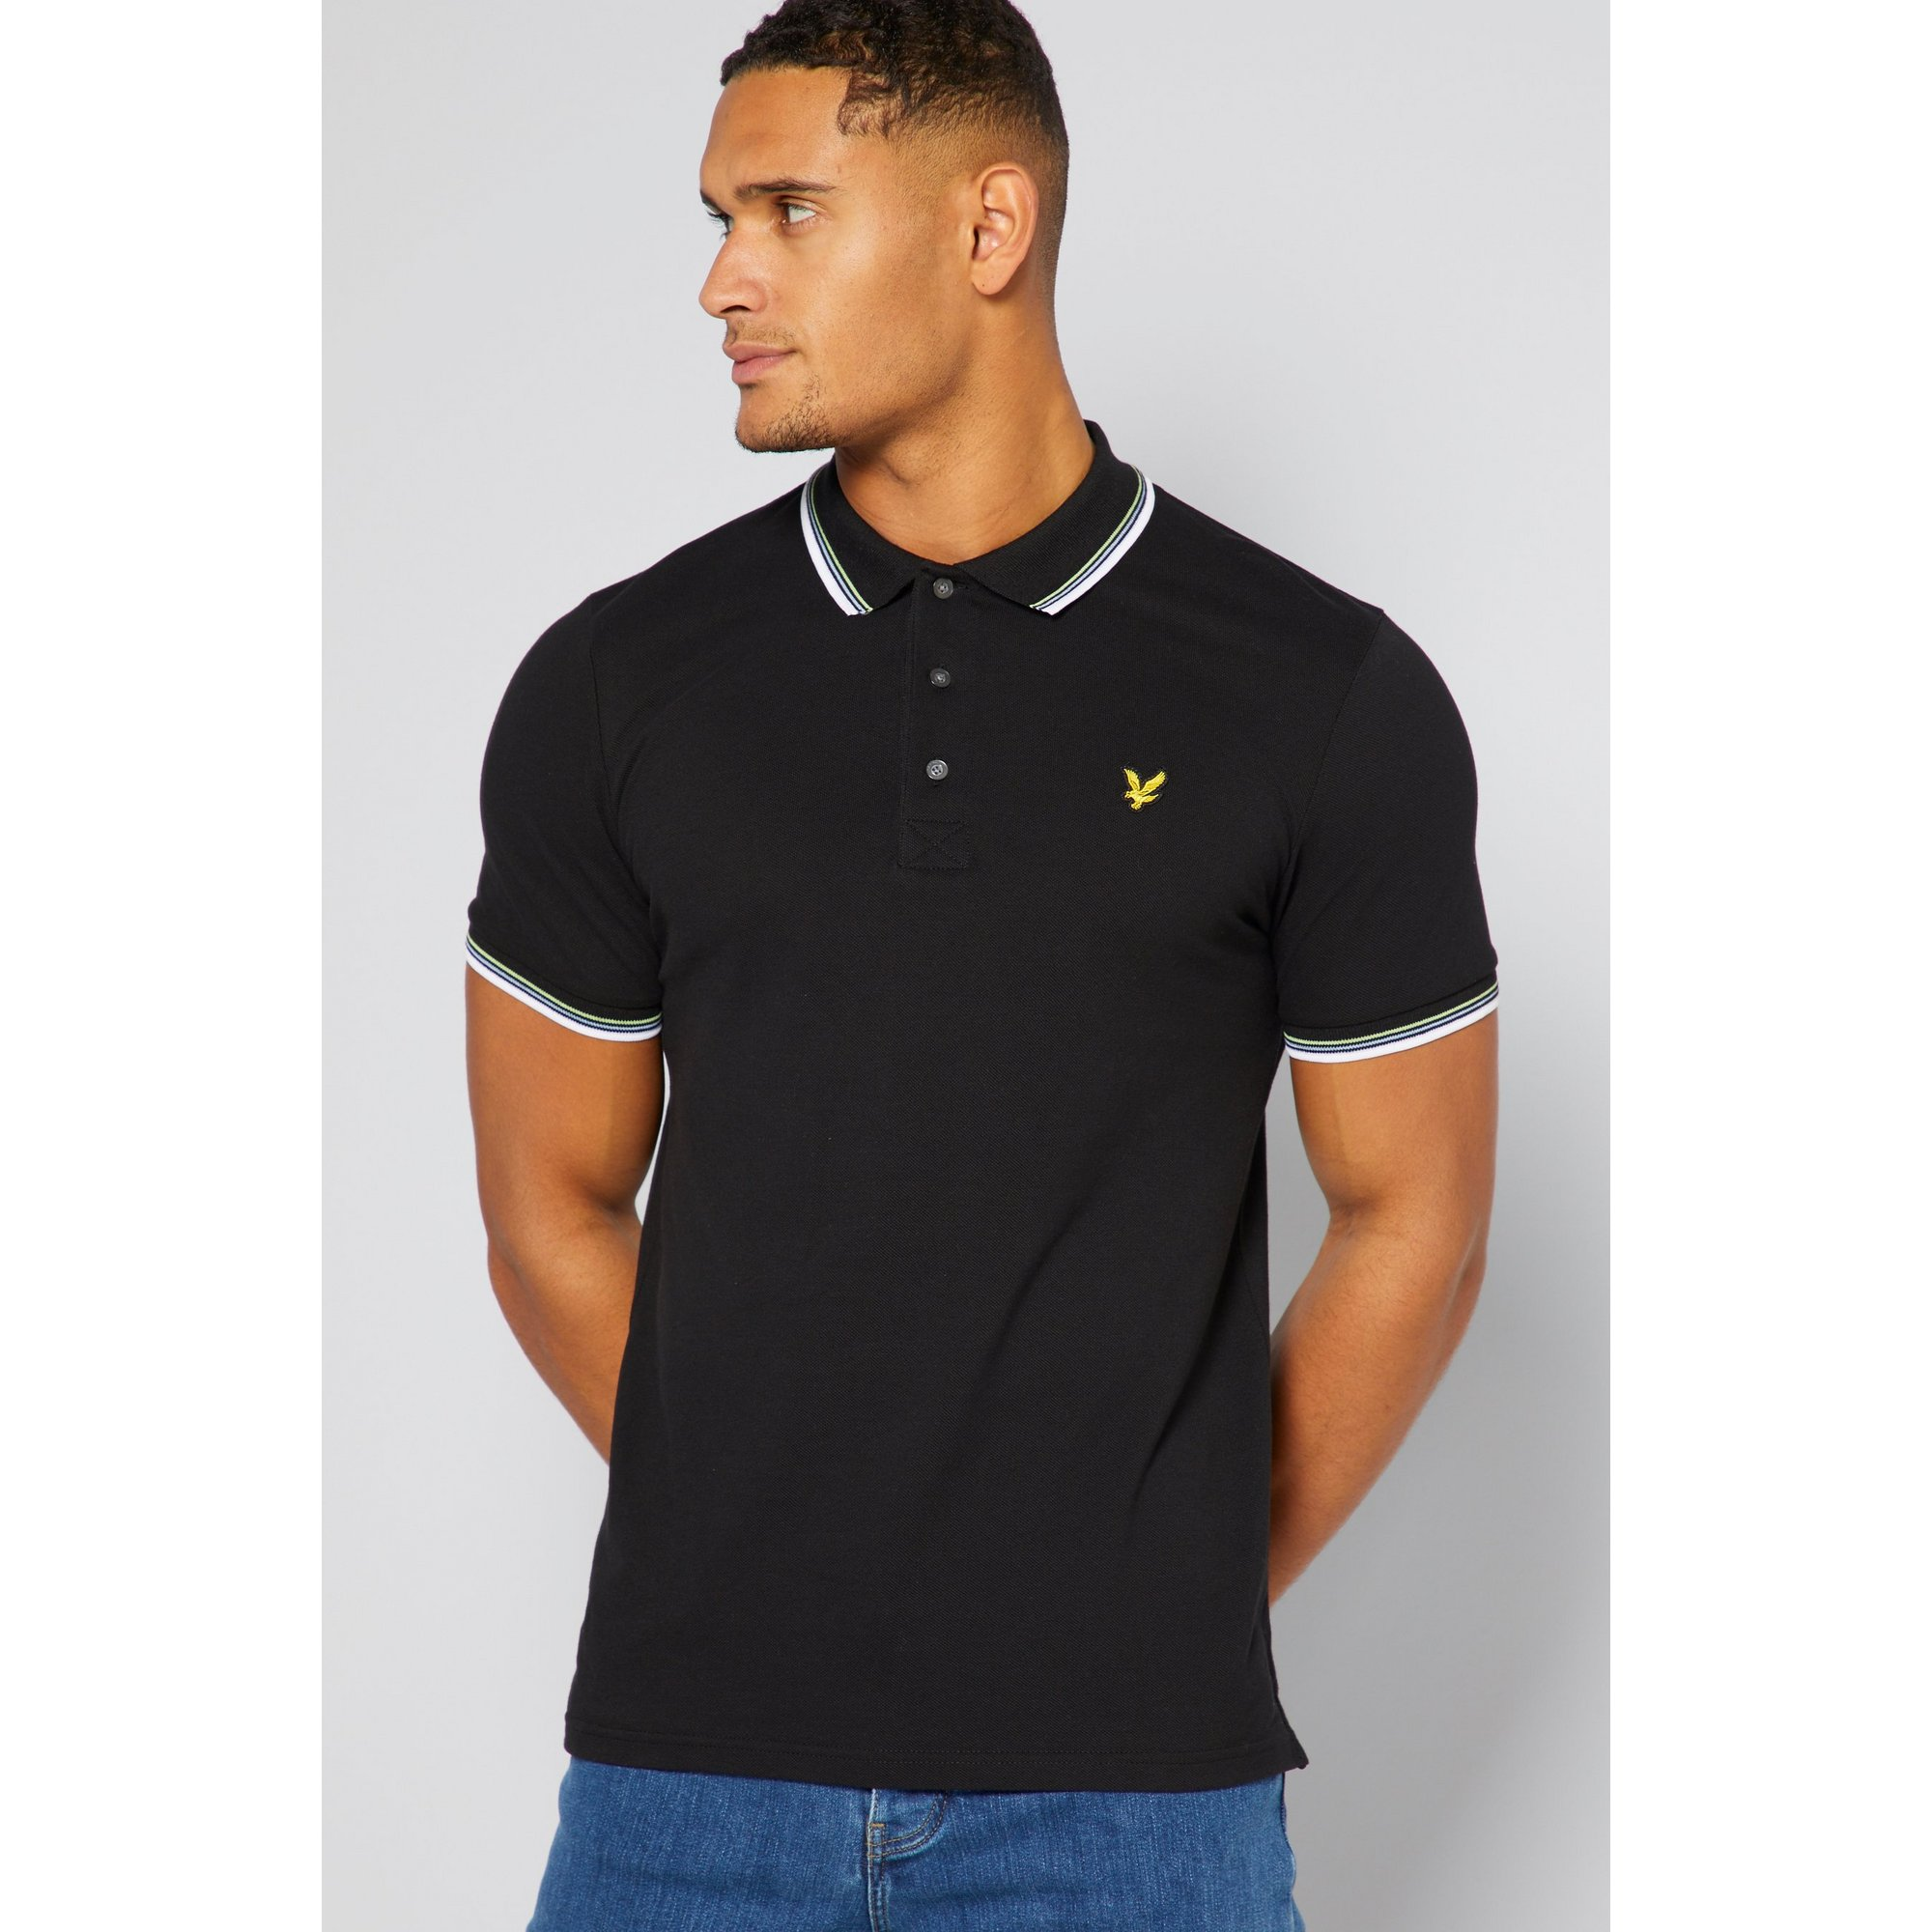 Image of Lyle and Scott Black Tipped Polo Shirt